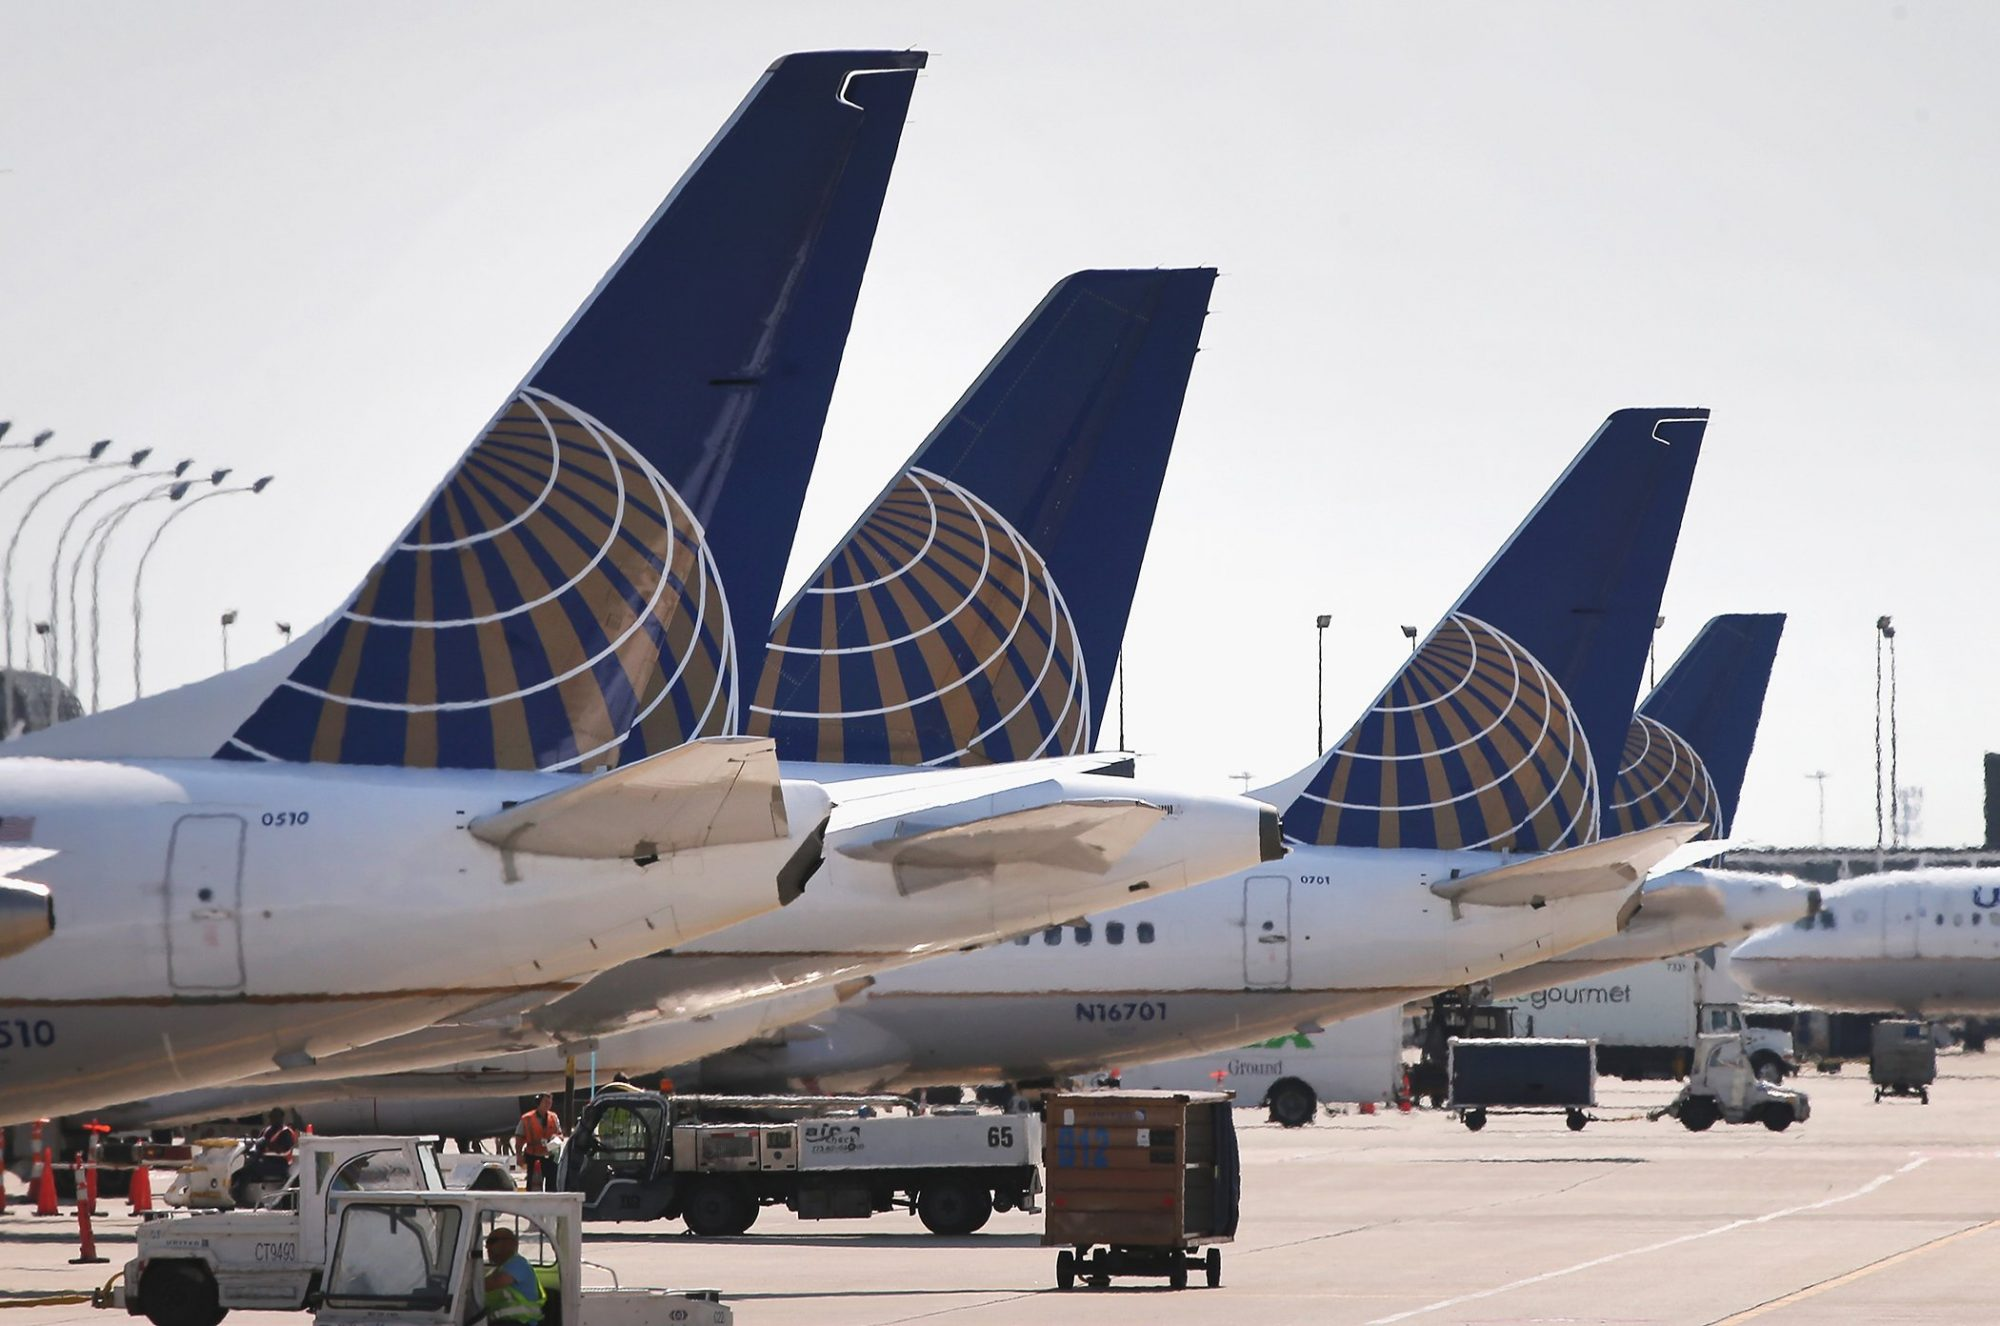 United Airlines jets sit at gates at O'Hare International Airport on September 19, 2014 in Chicago, Illinois.